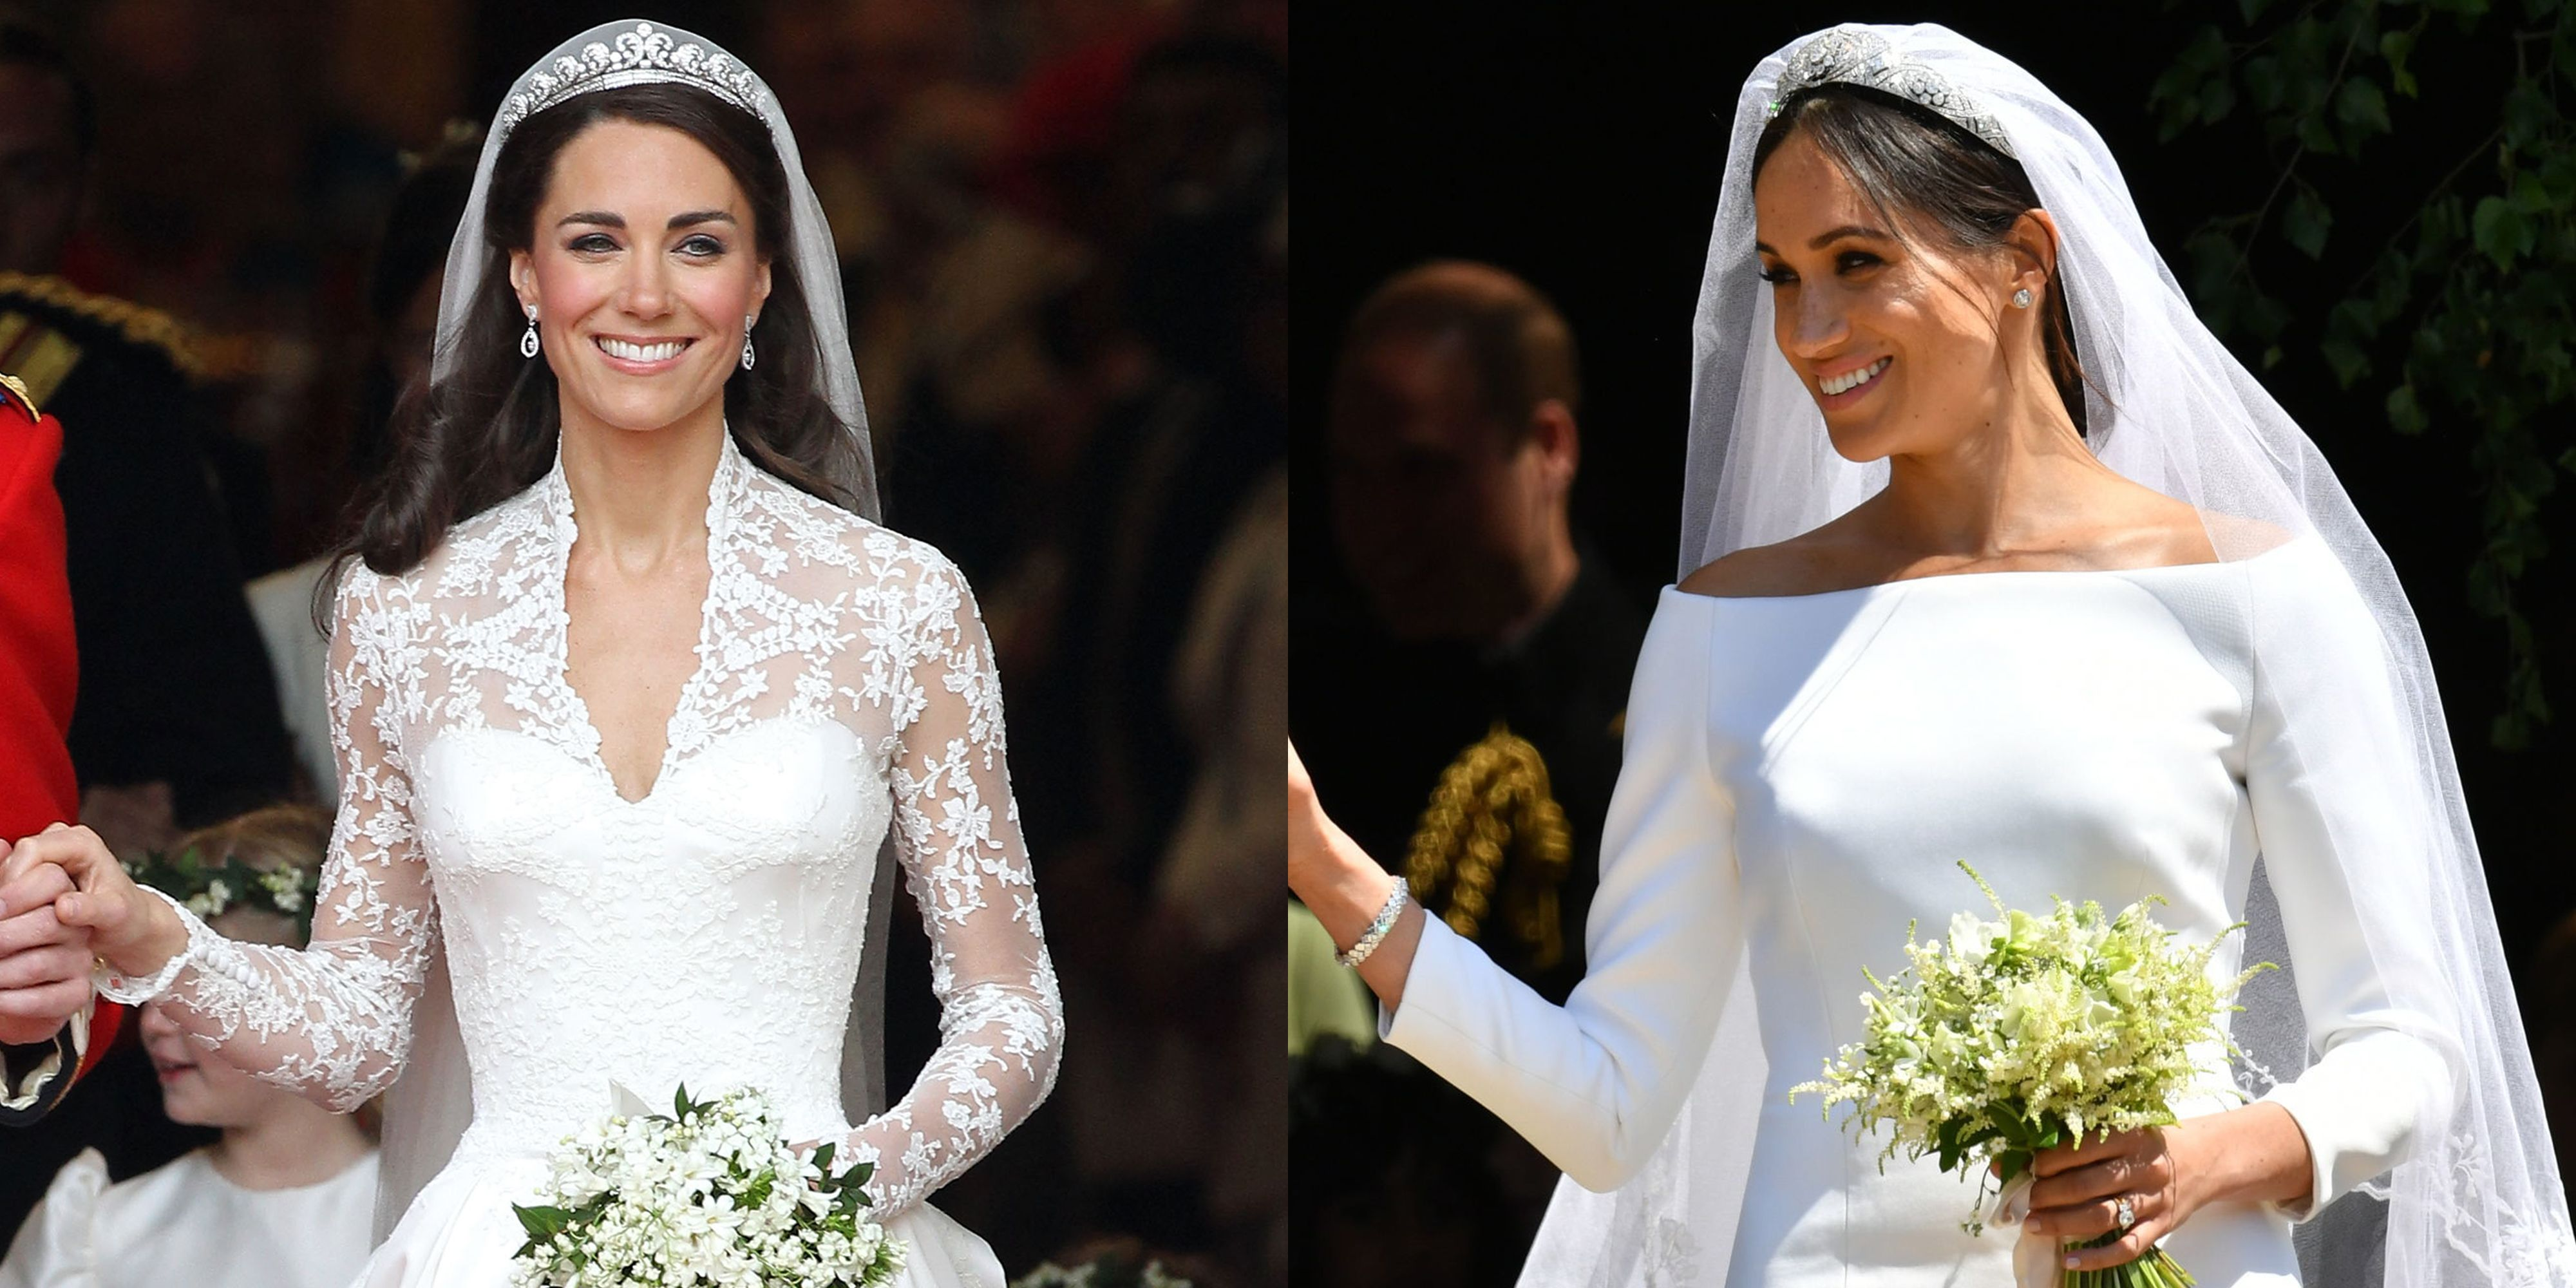 Royal Wedding meghan markle duchess catherine dress